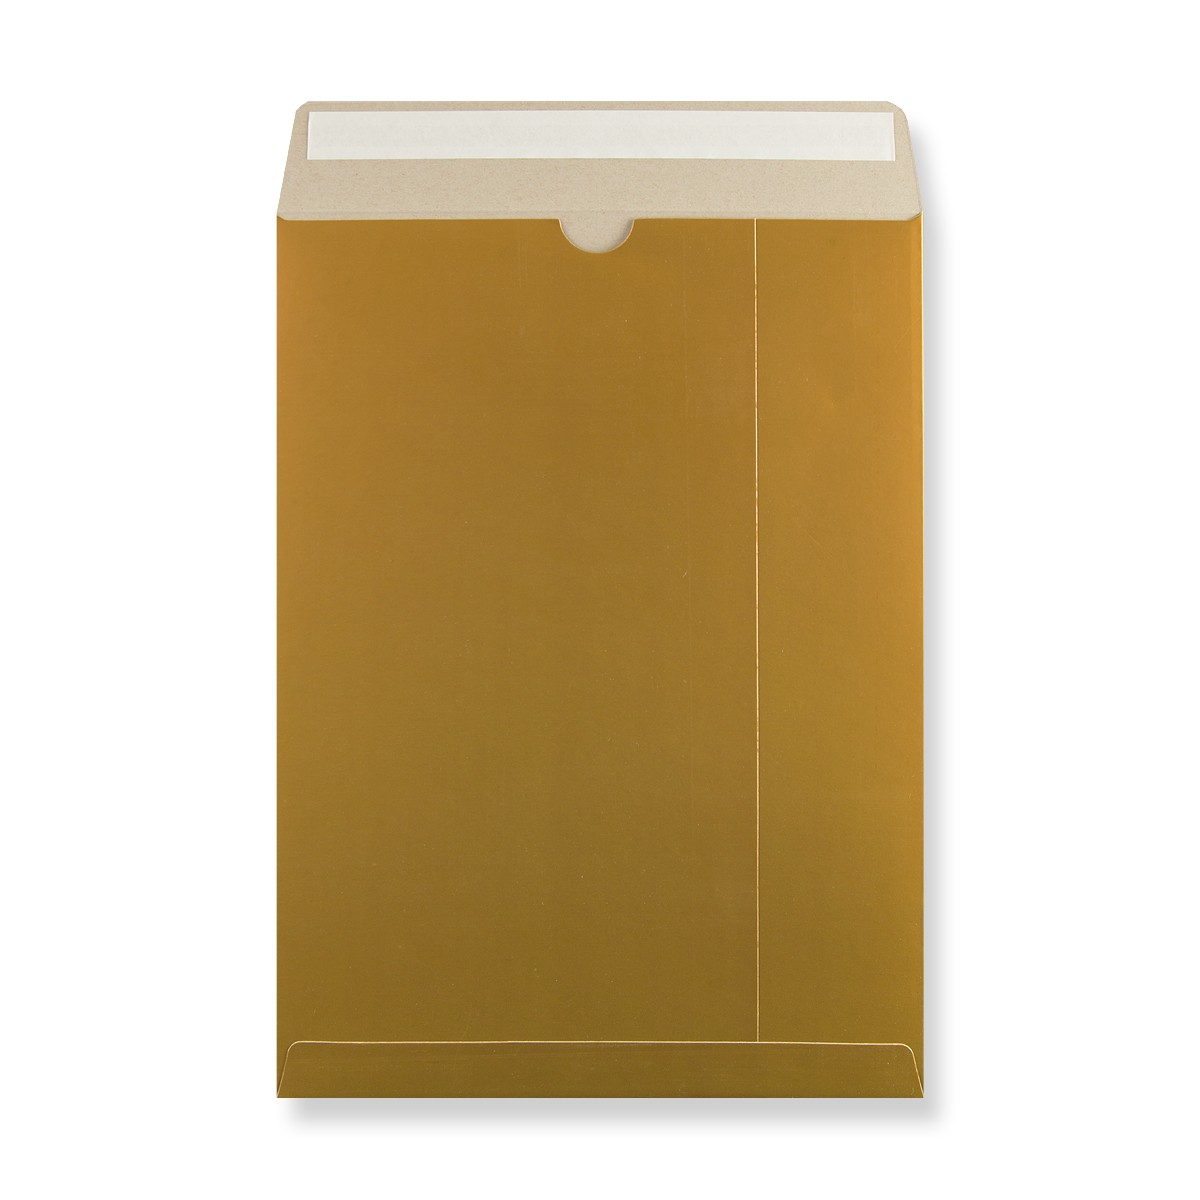 C3 GOLD ALL BOARD ENVELOPES